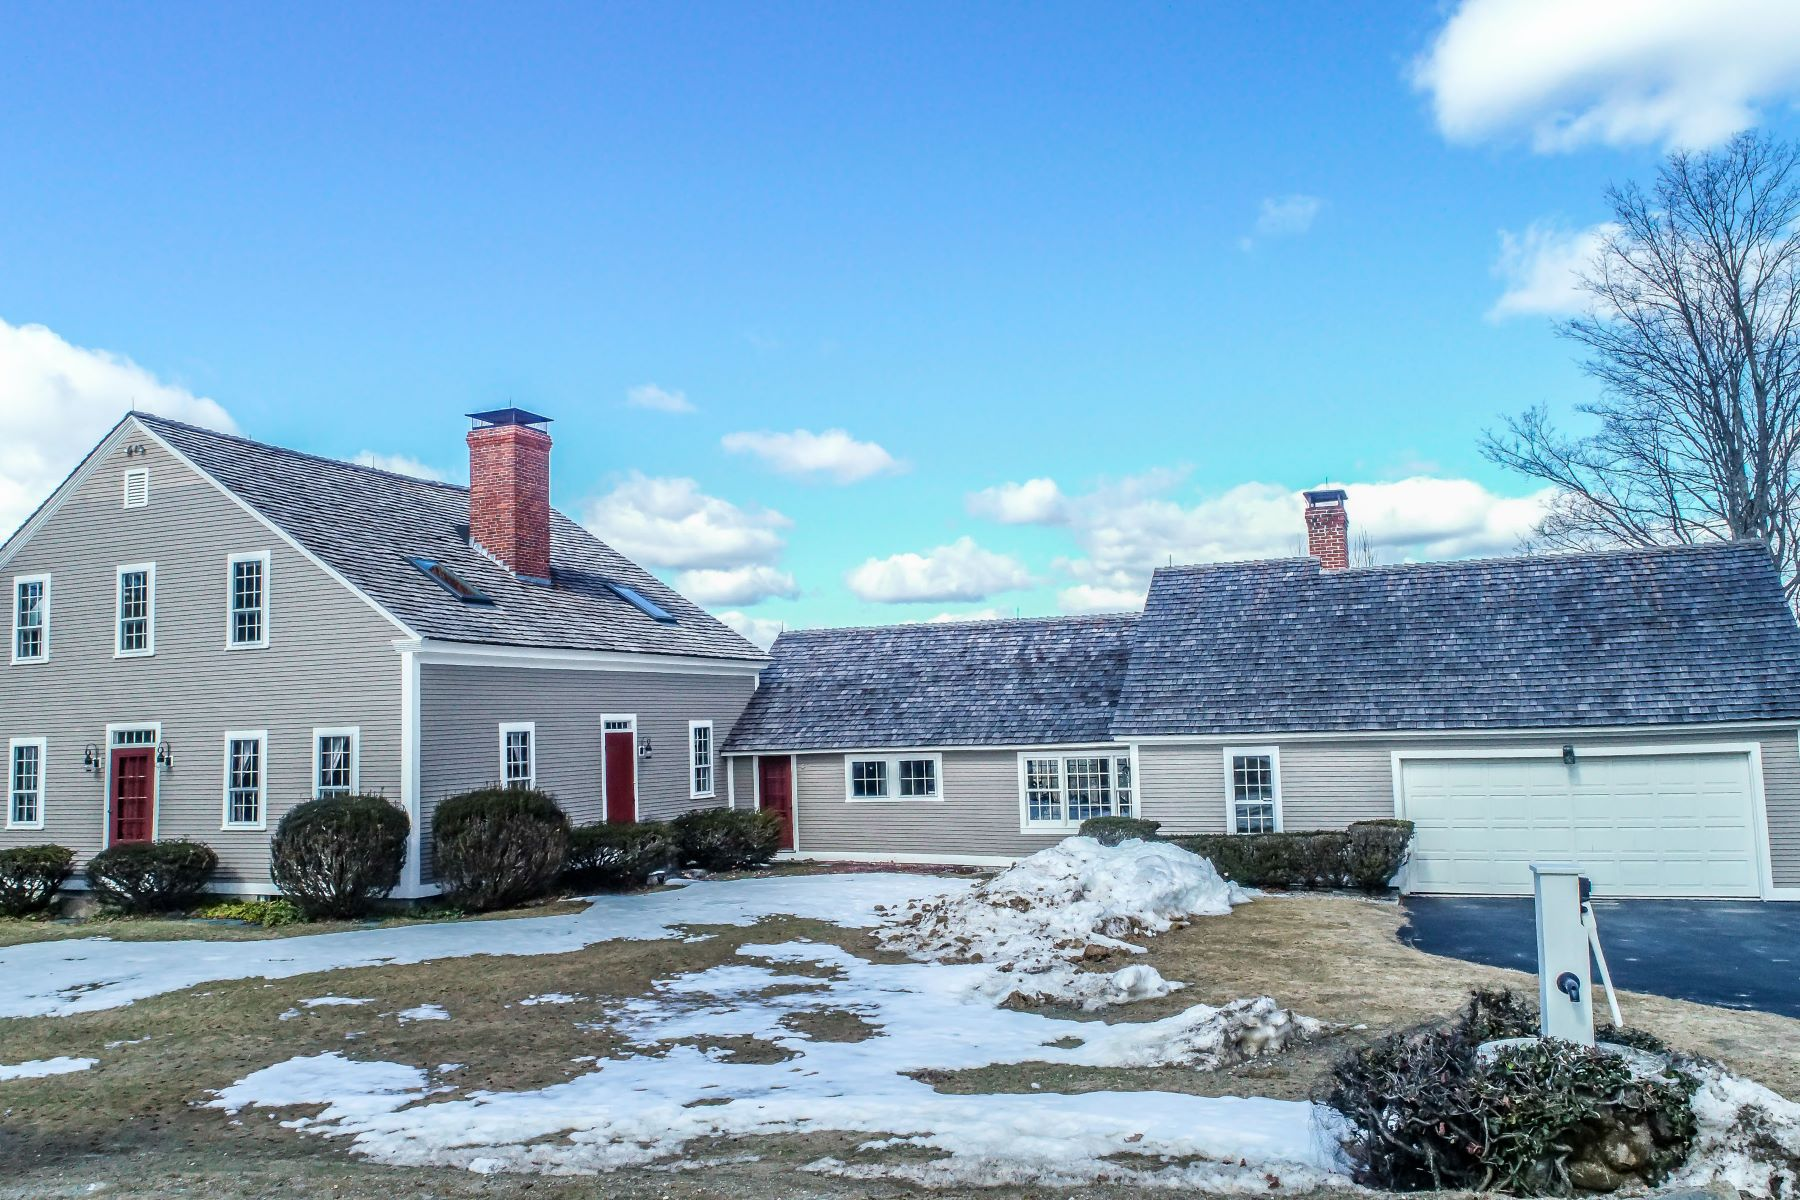 Single Family Homes for Sale at 174 Lead Mine Road Nelson, New Hampshire 03457 United States